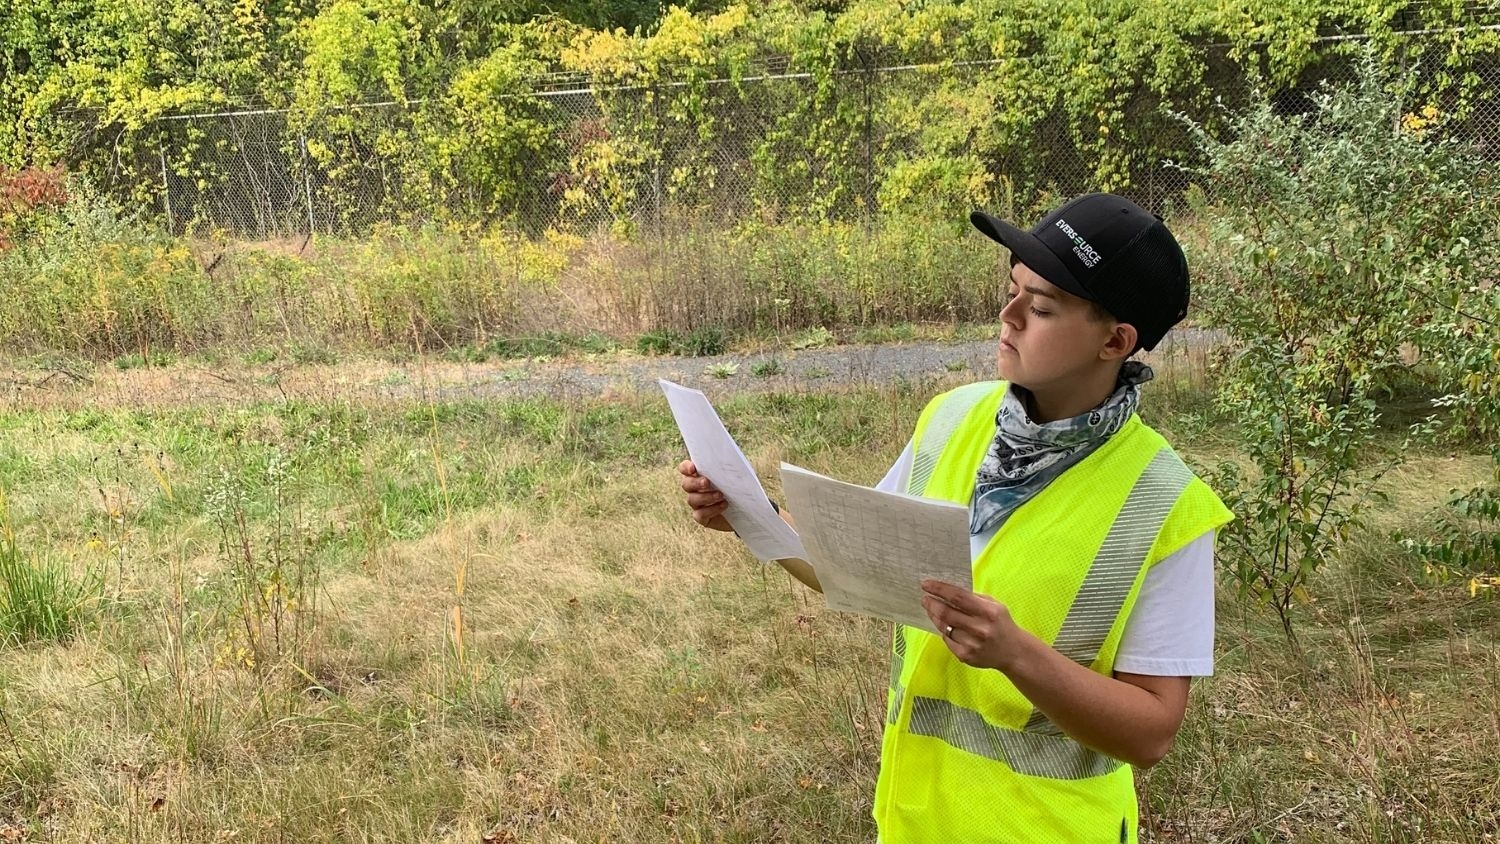 Reading Document in Field - Five Questions with Environmental Specialist Deanna Sassorossi - College of Natural Resources at NCState University